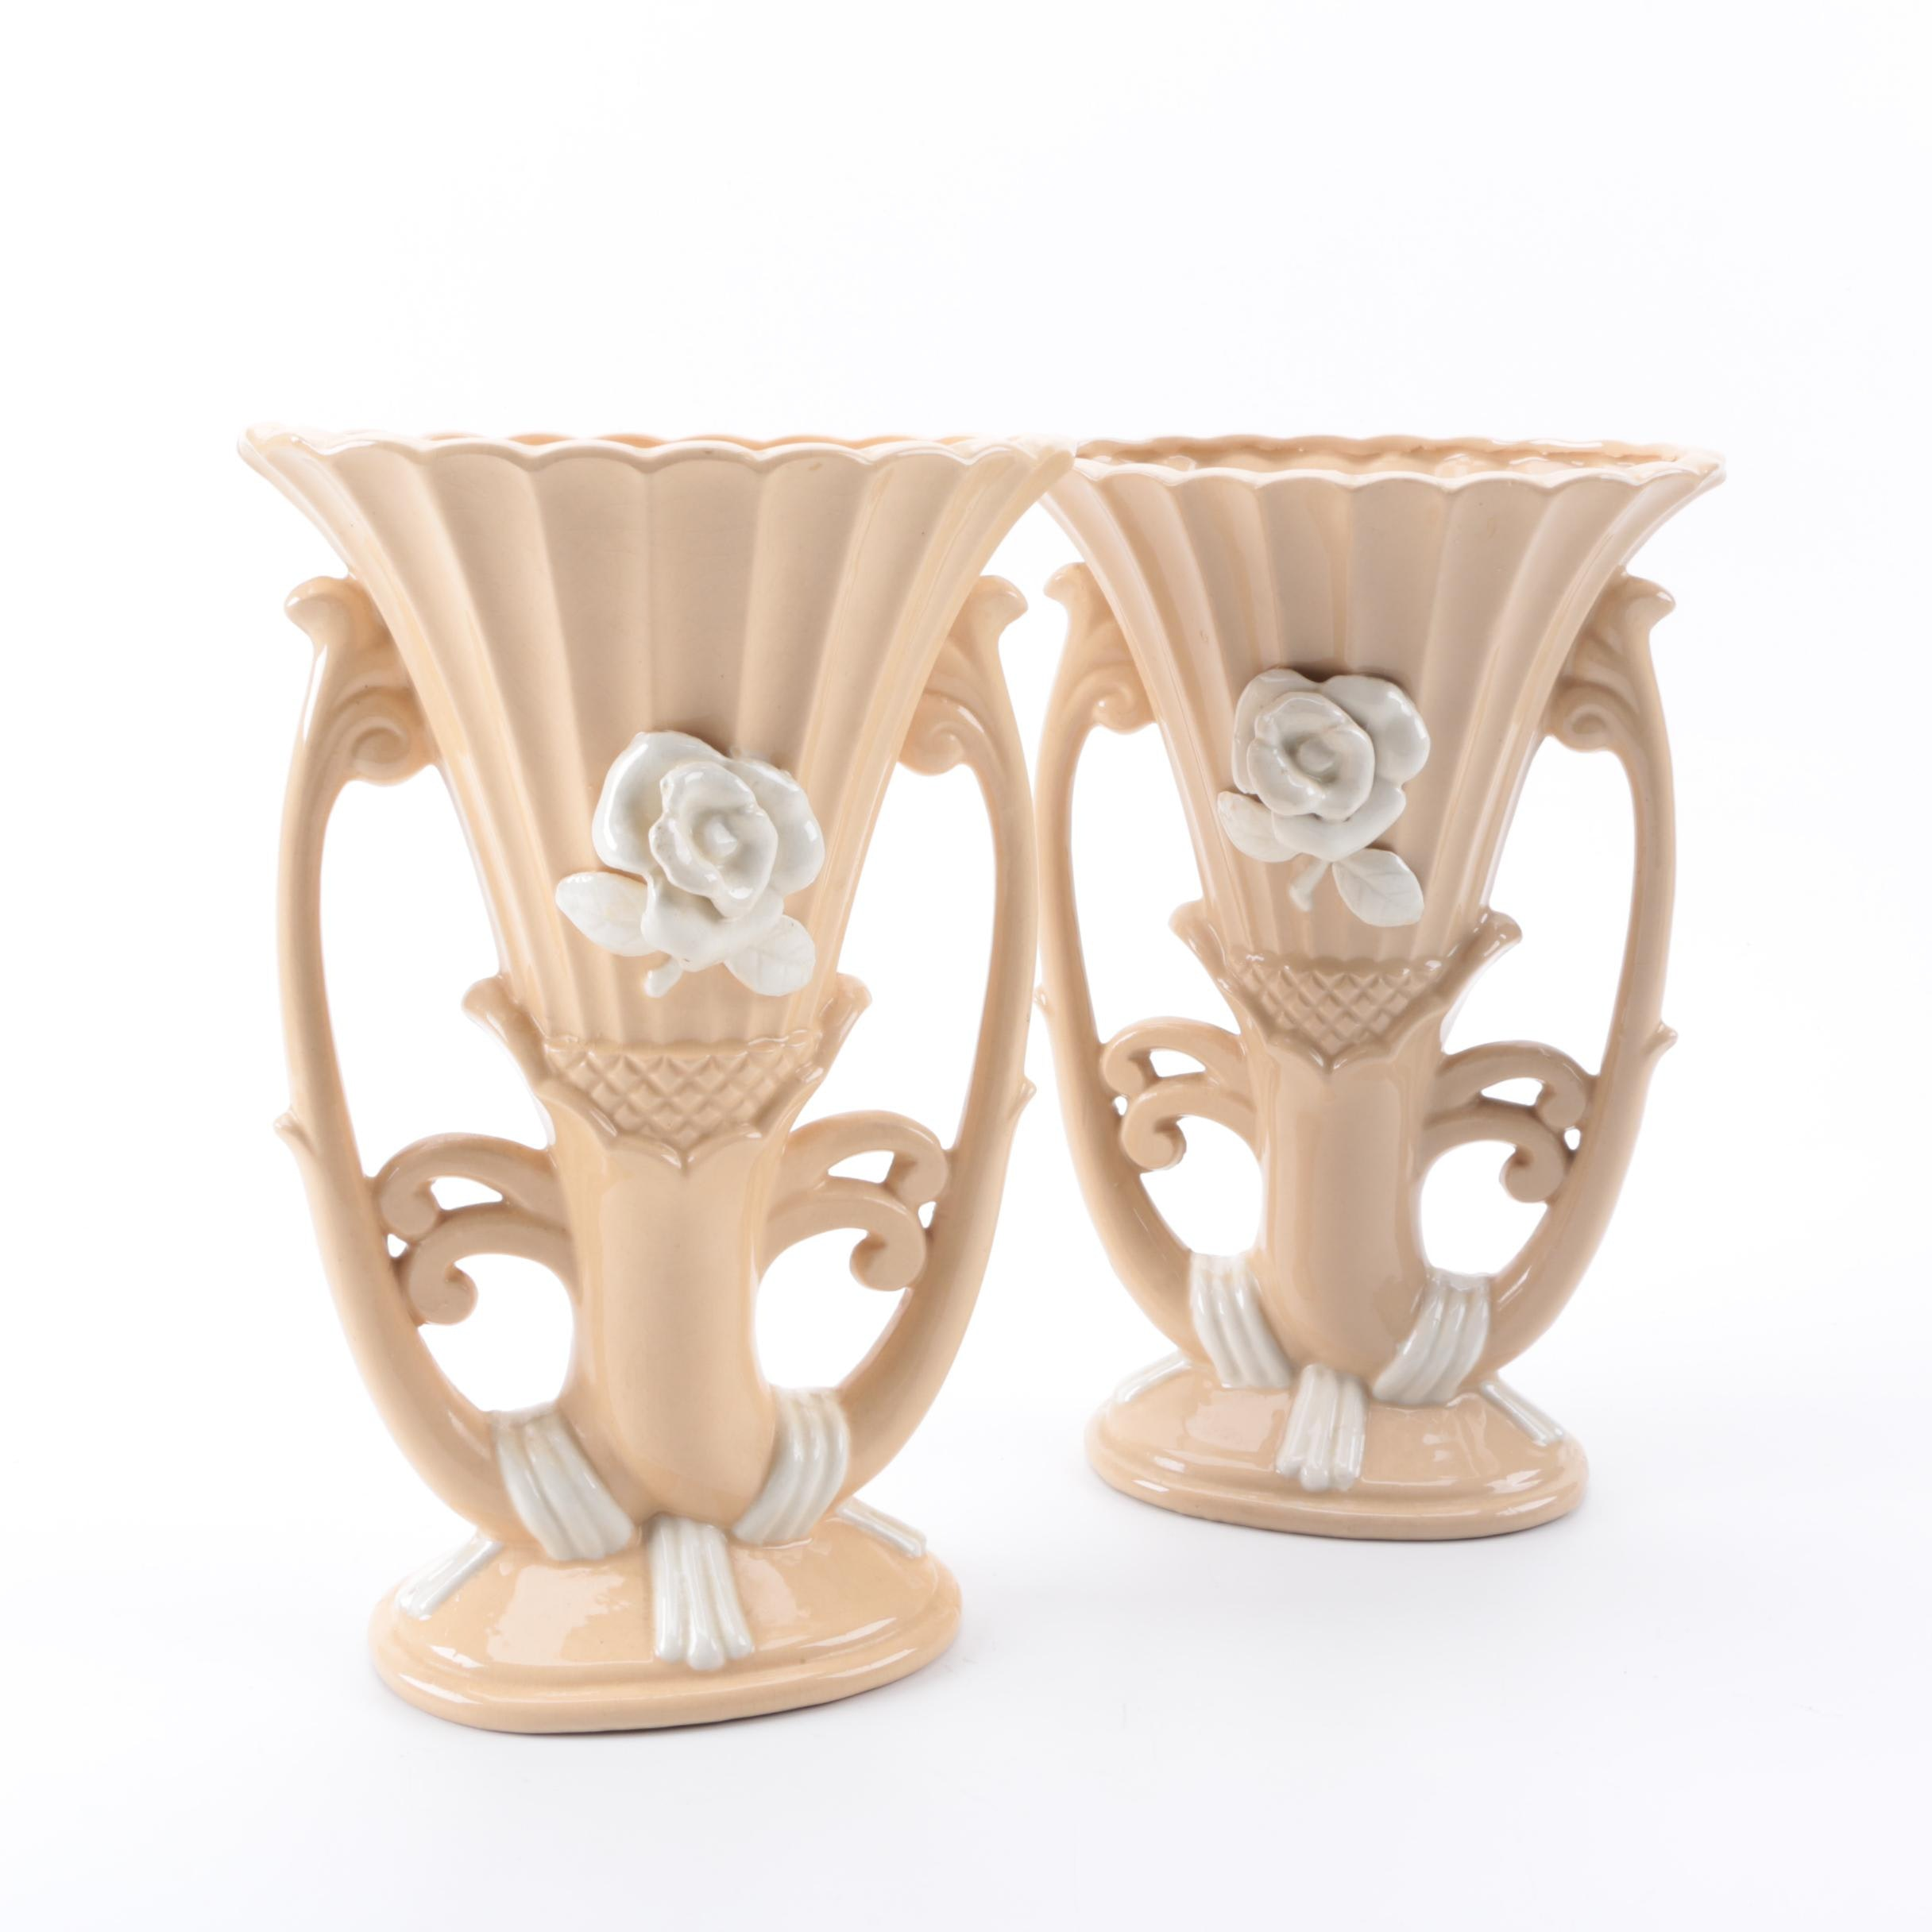 Pair of Japanese Blush and Ivory Vases